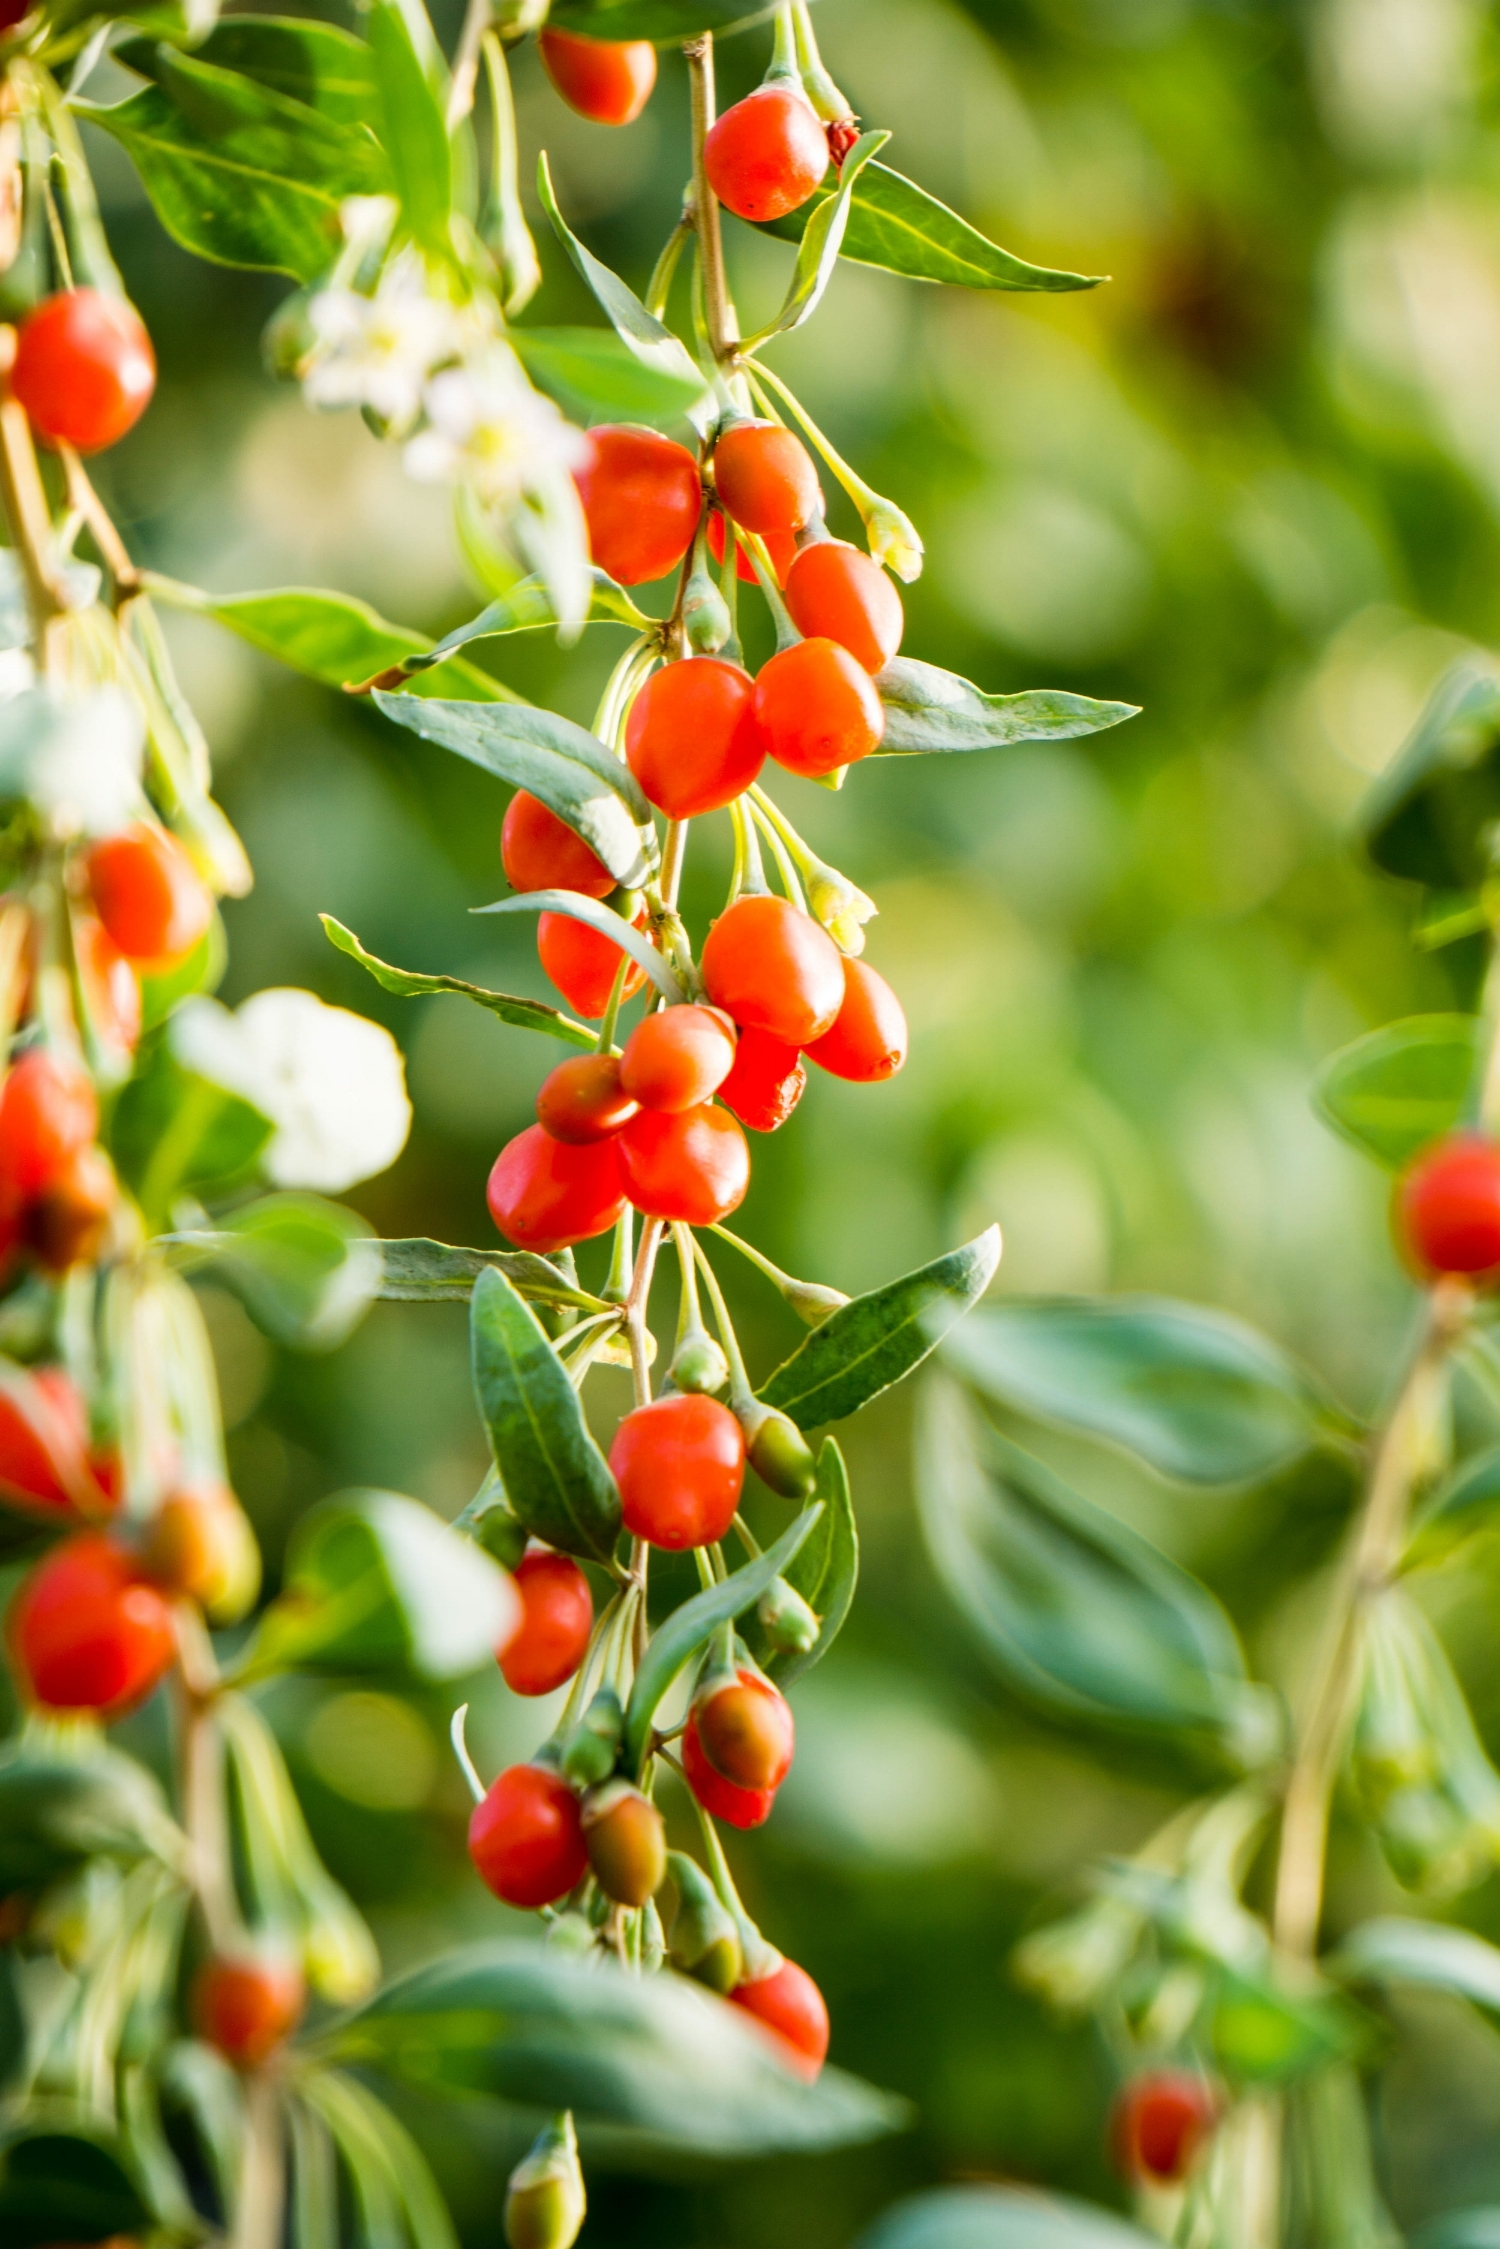 Goji berries, these aren't just pretty, they're pretty good for you too.